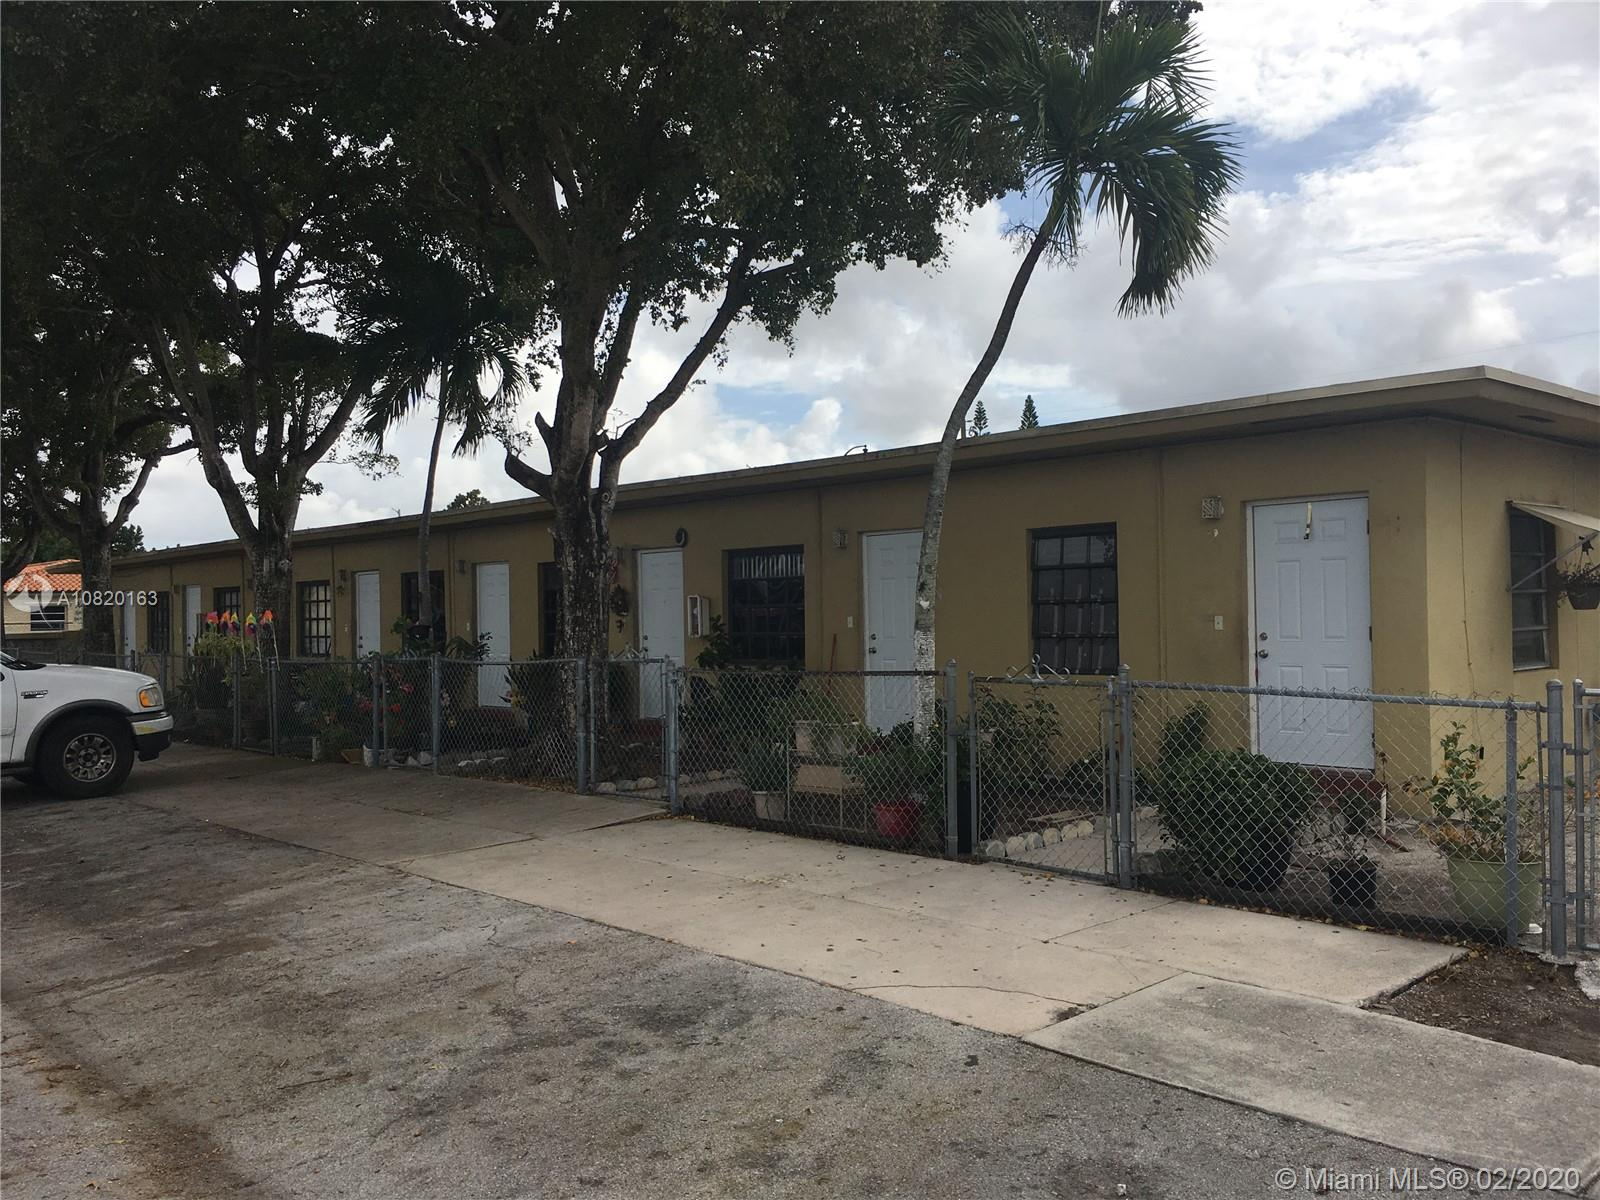 1082 Palm Ave, Hialeah, FL 33010